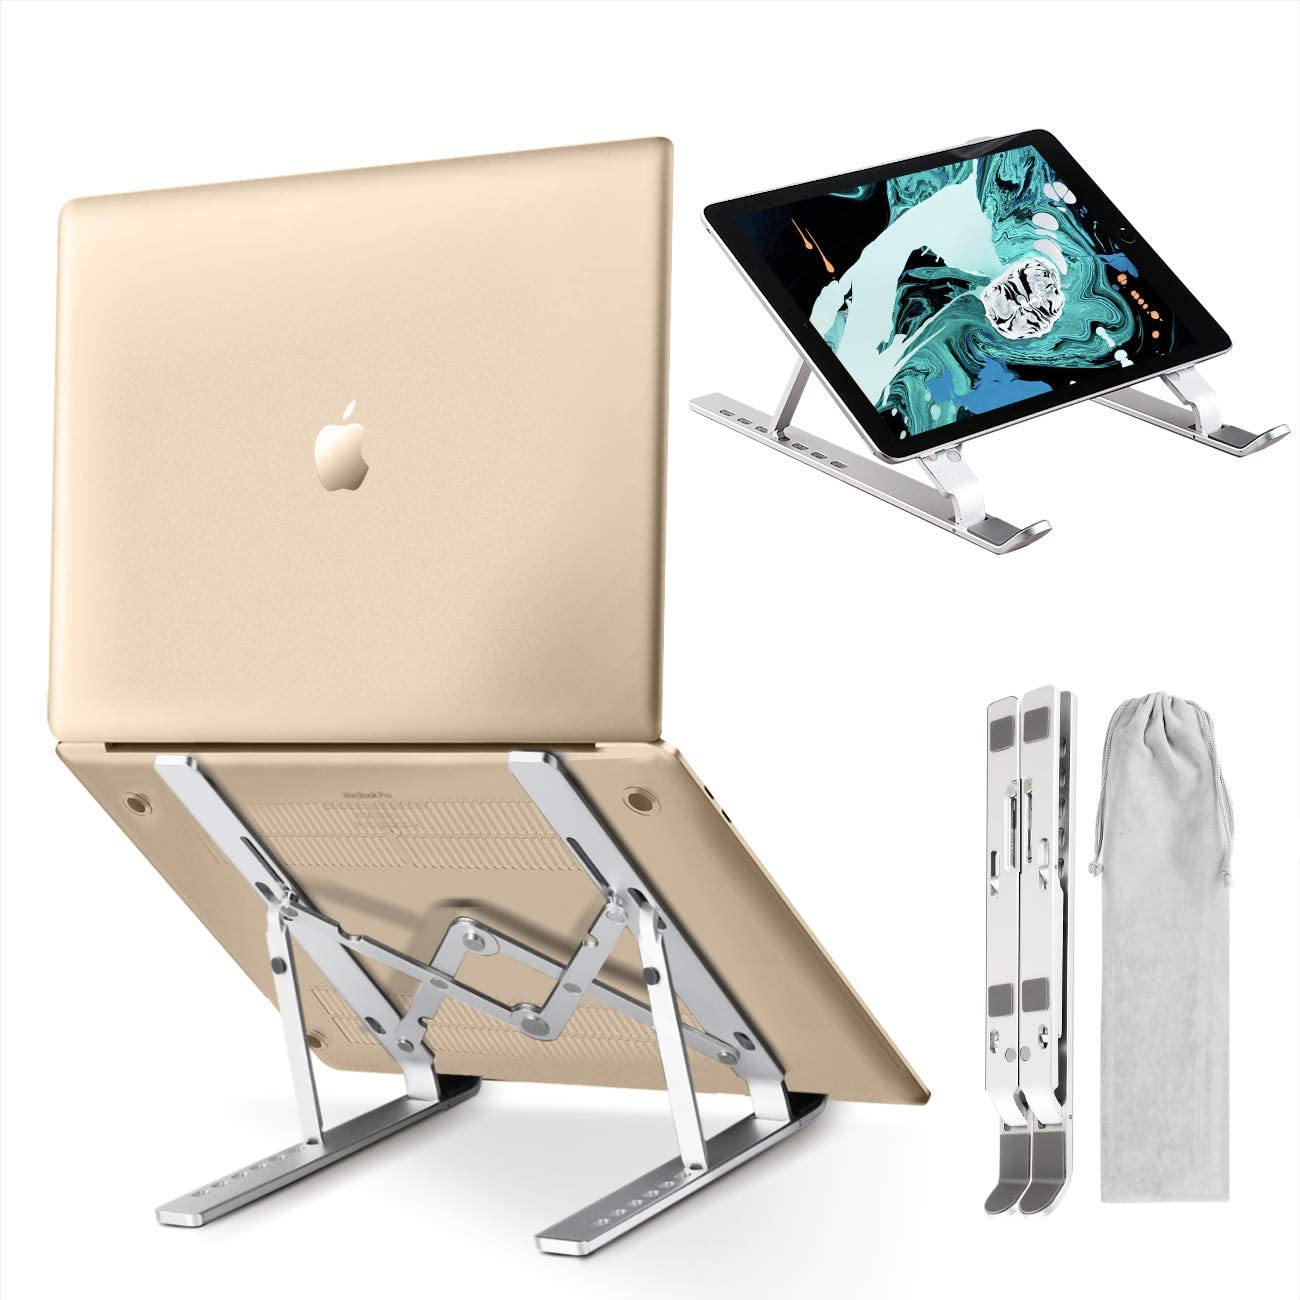 """Laptop Stand, Adjustable Ergonomic Portable Aluminum Laptop Desk Stand, Foldable Notebook Stand Laptop Holder Compatible with MacBook Air/Pro, Dell XPS, HP, Surface 10-15.6"""" Laptops and Tablets"""